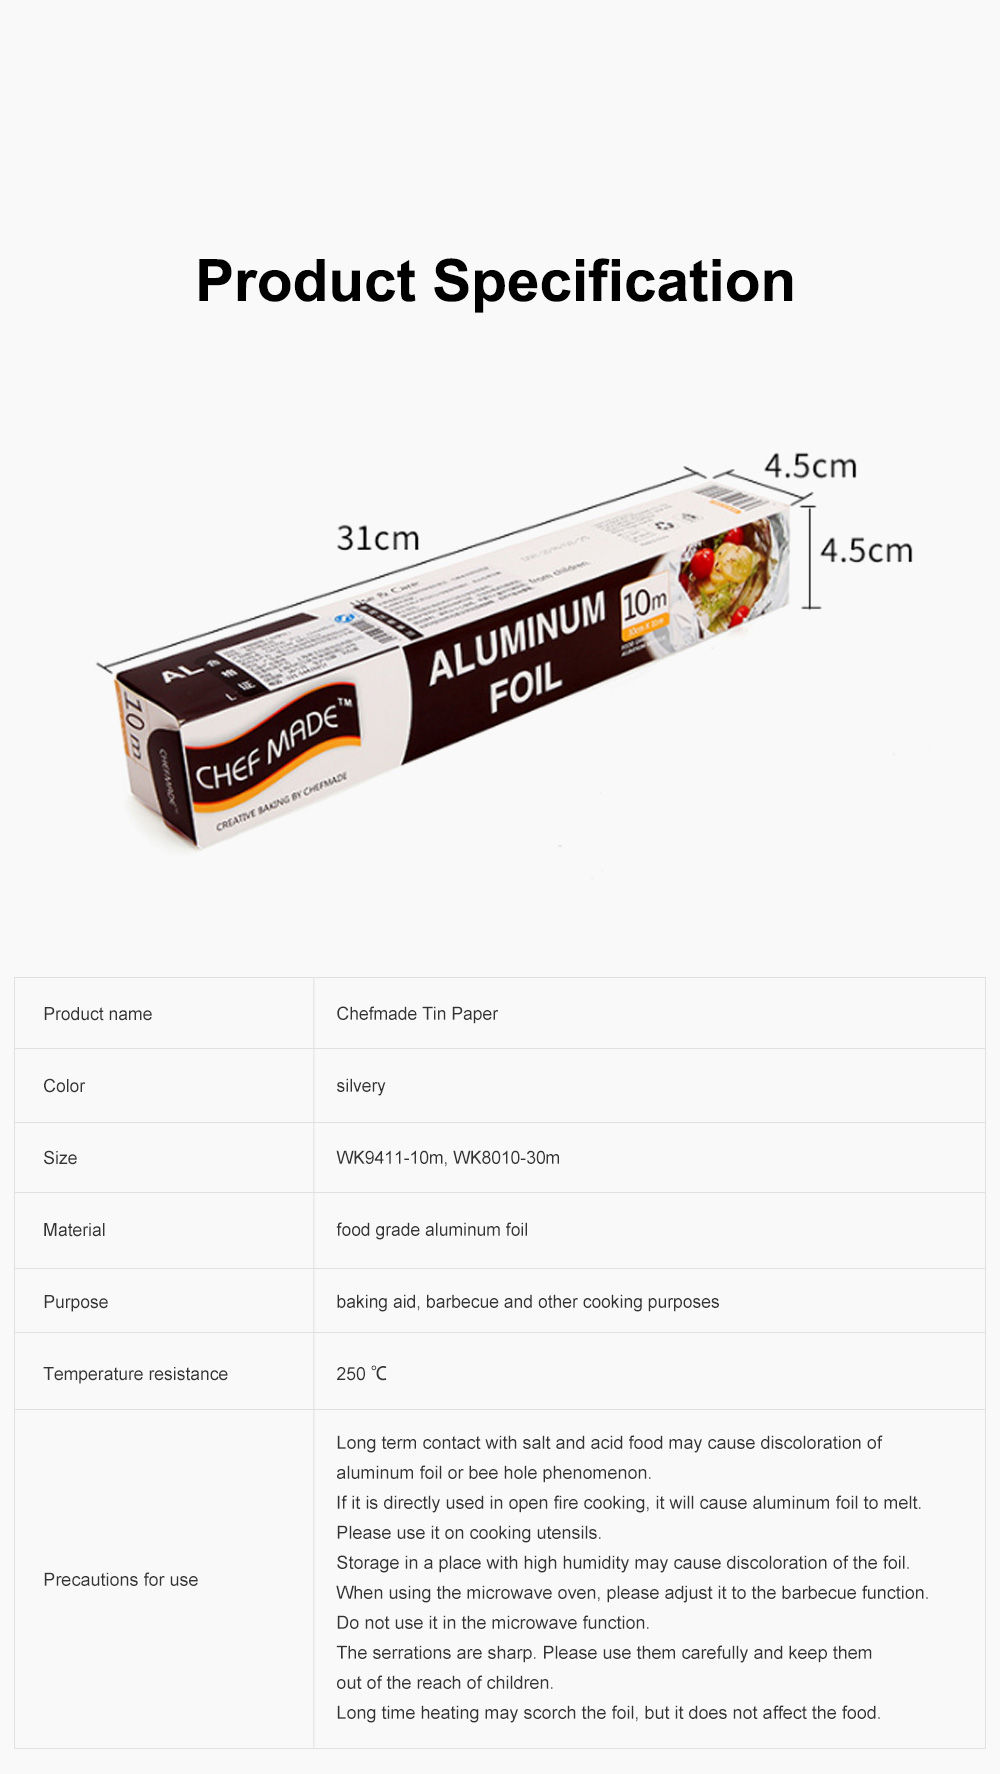 Chefmade Tin Paper Barbecue Cooking Western Dim Sum Tin Paper Barbecue Tin Foil Paper Aluminum Foil Paper 6